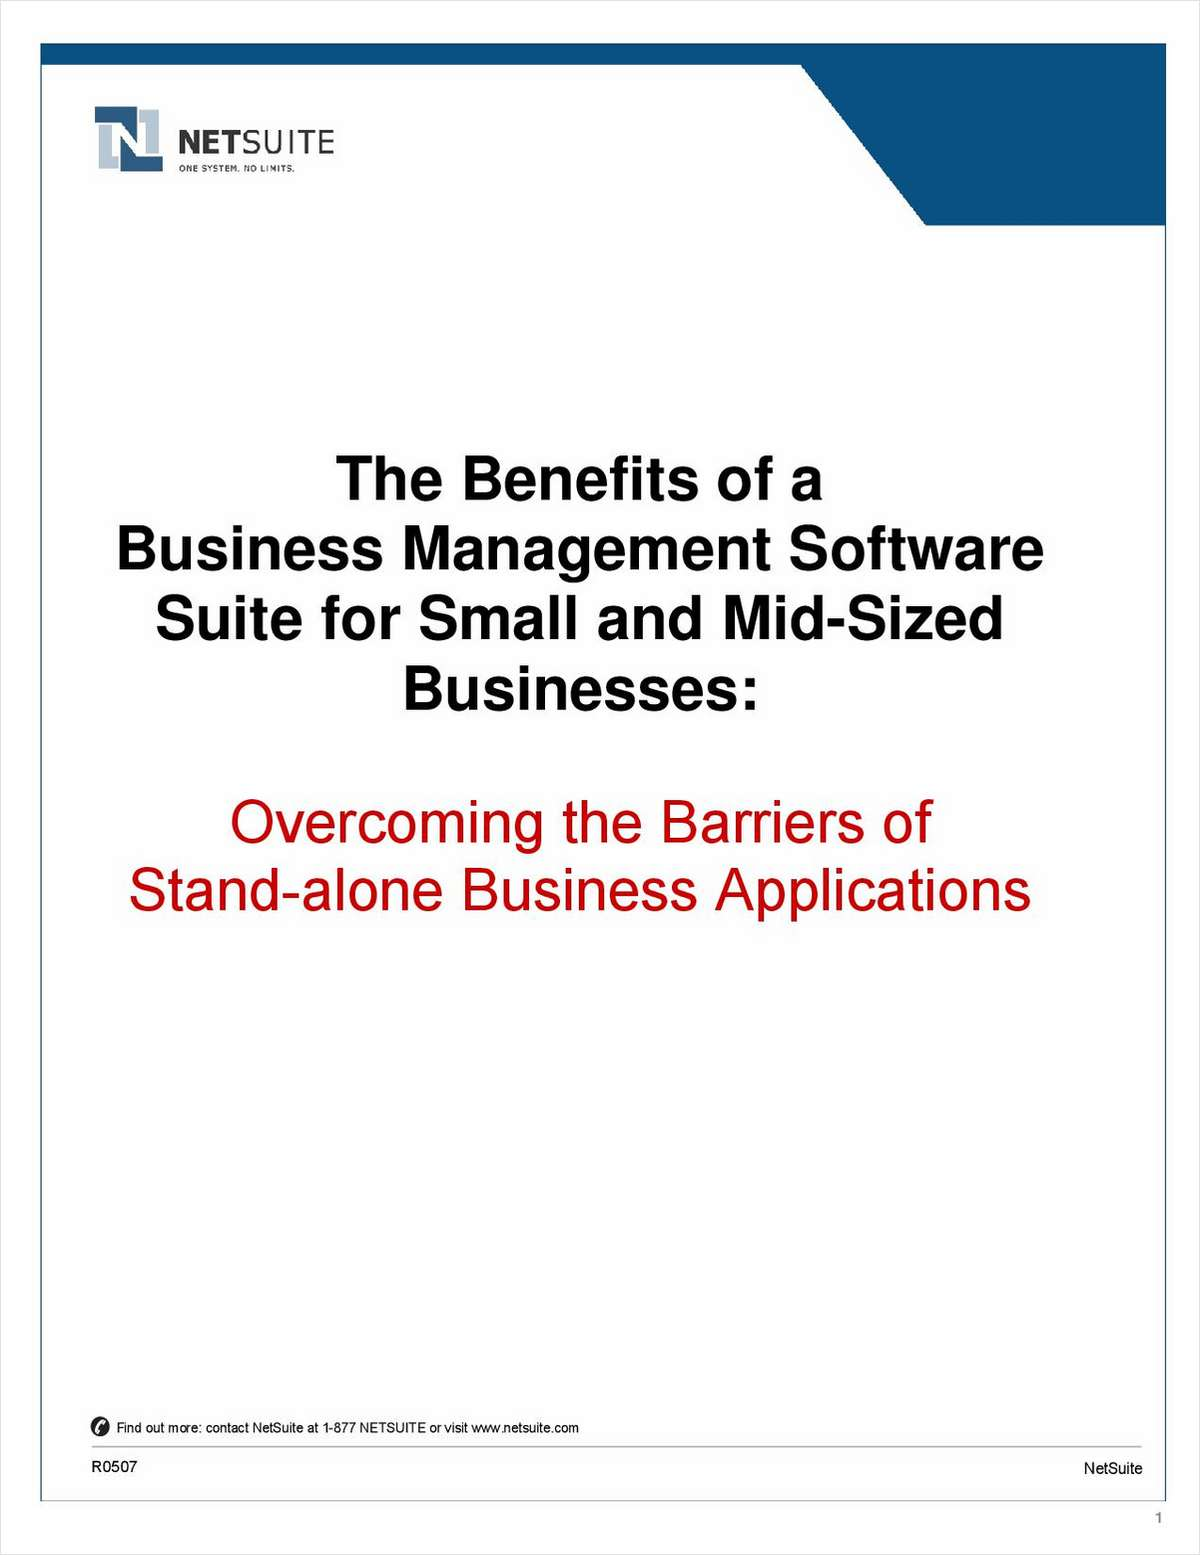 Overcoming the Barriers of Stand-alone Business Applications